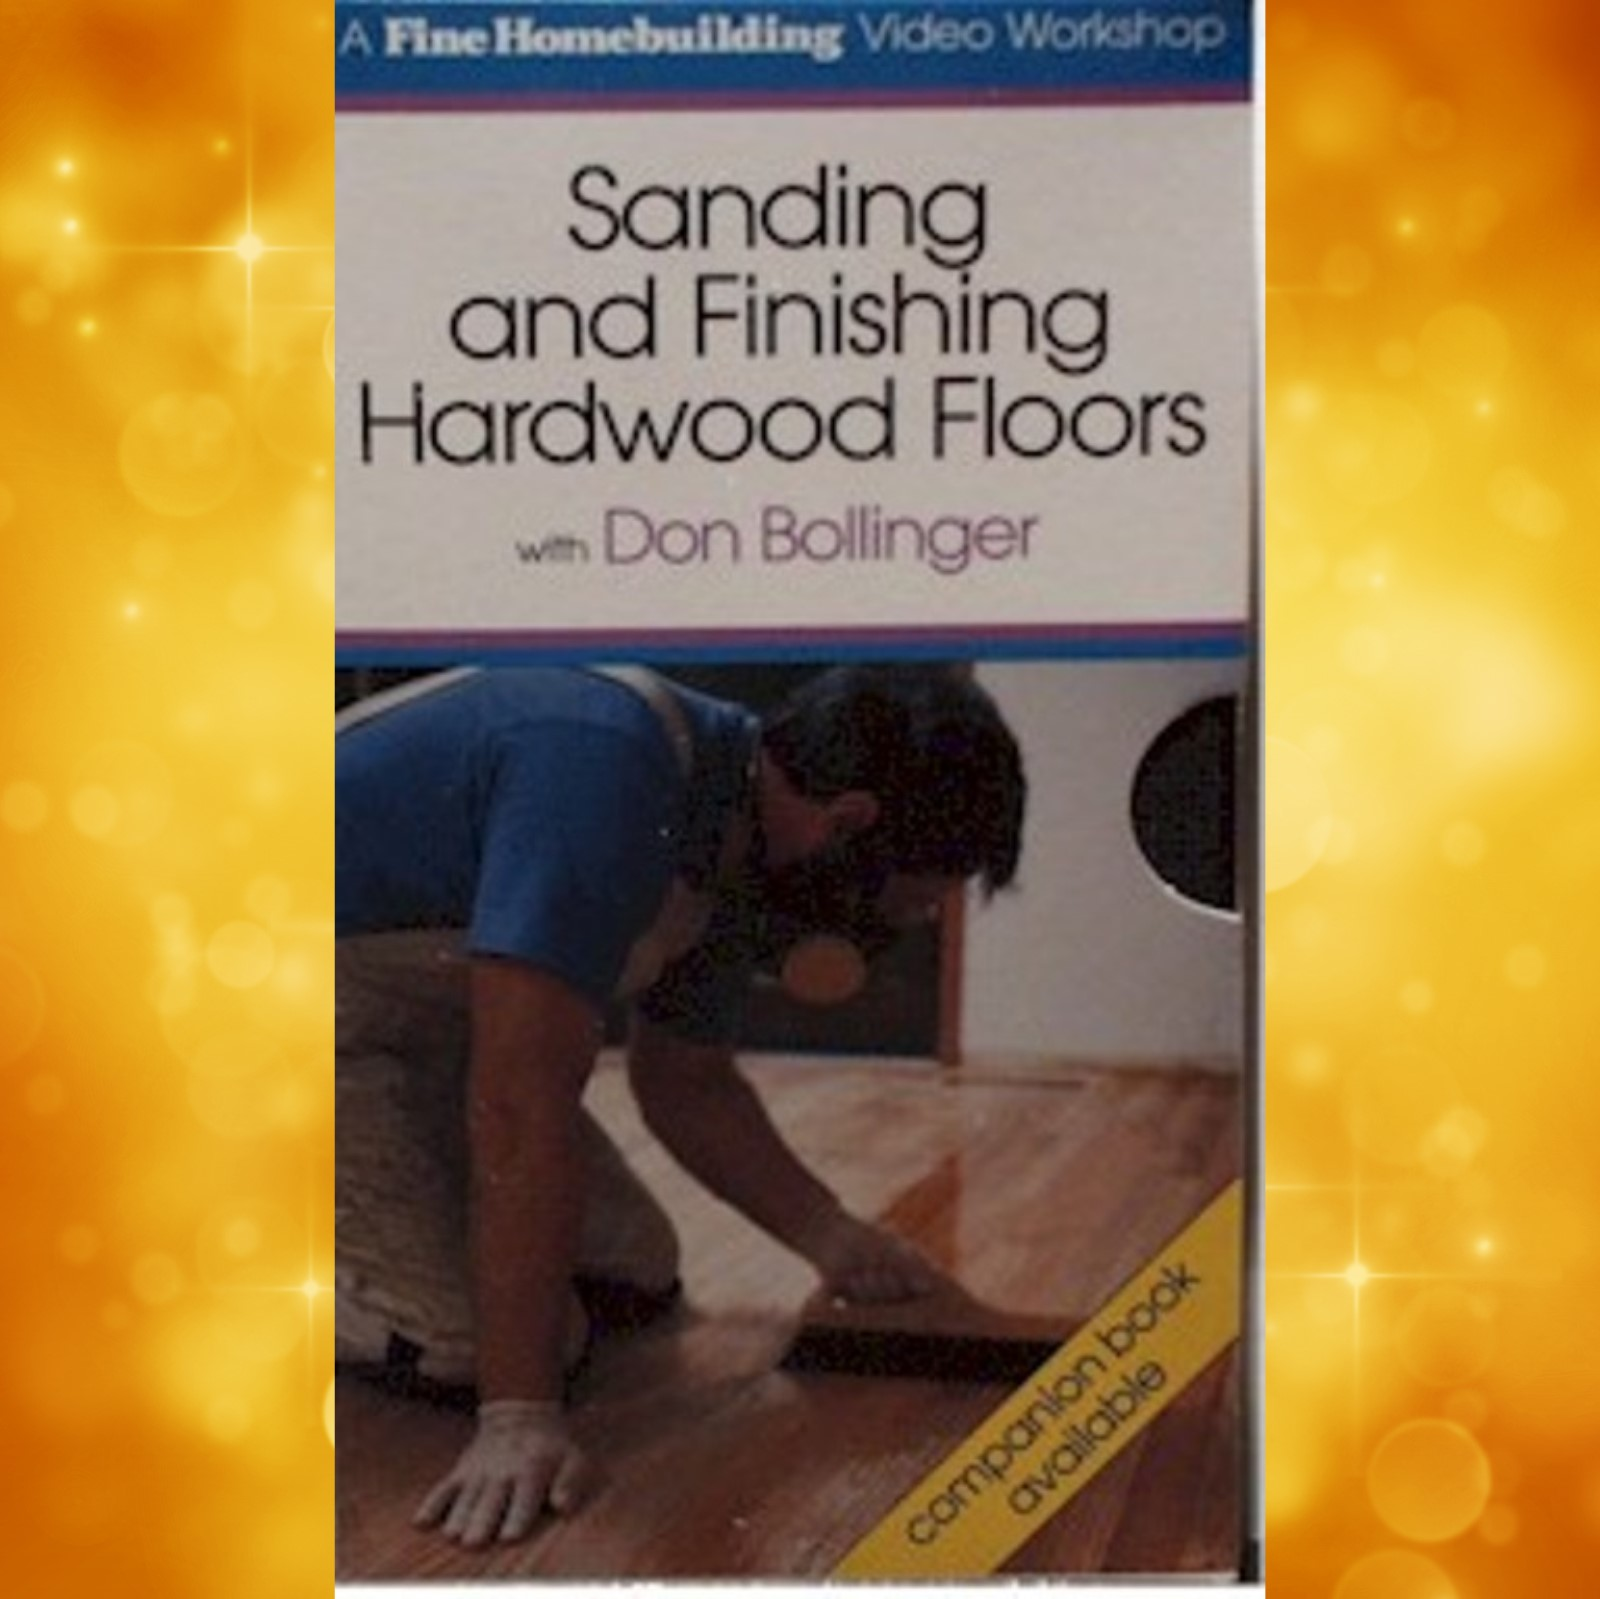 Sanding and Finishing Hardwood Floors/Don Bollinger  (VHS) 060059